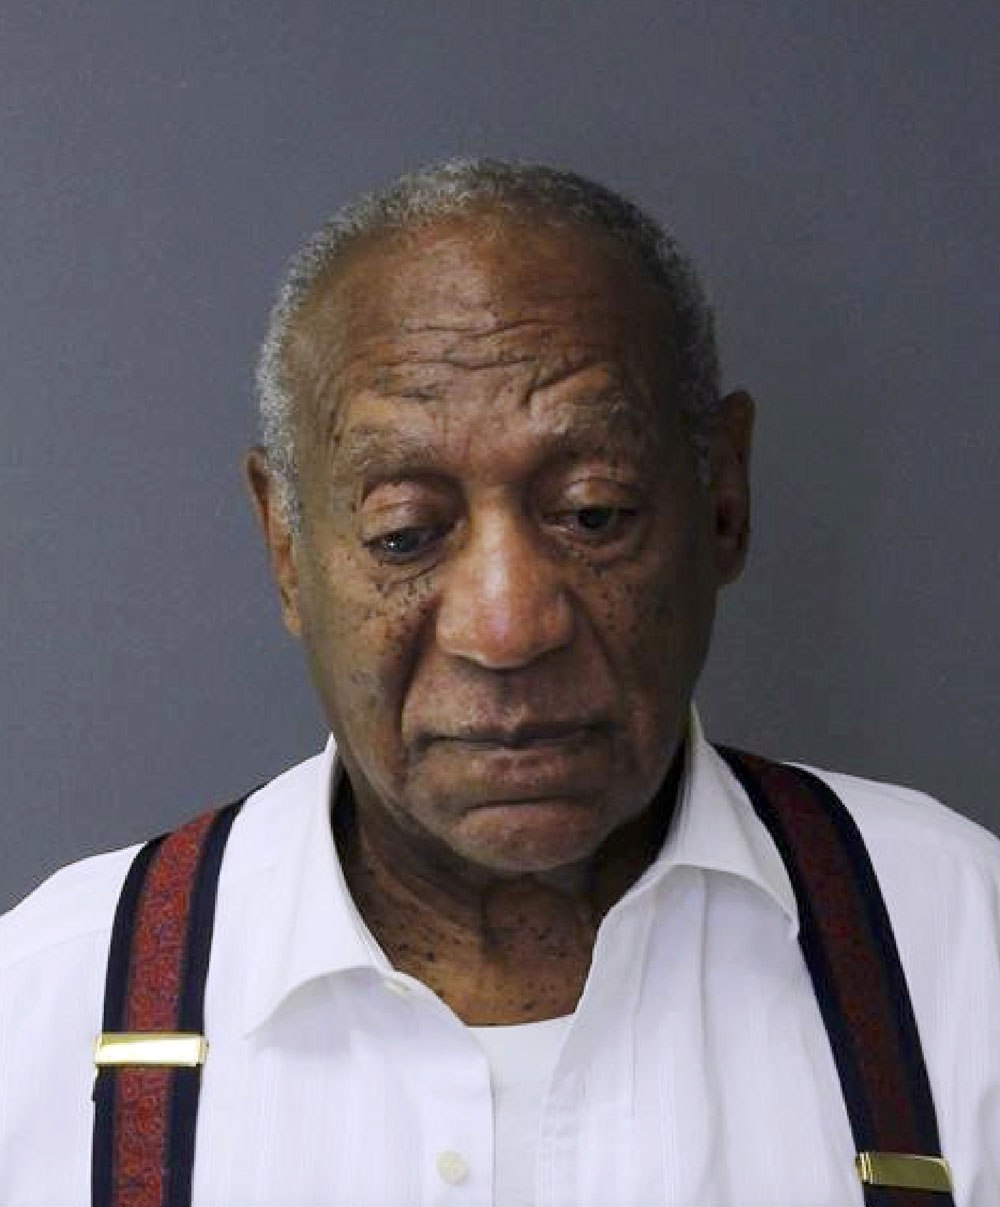 Lionsgate's Bill Cosby Documentary Is Dead (EXCLUSIVE)